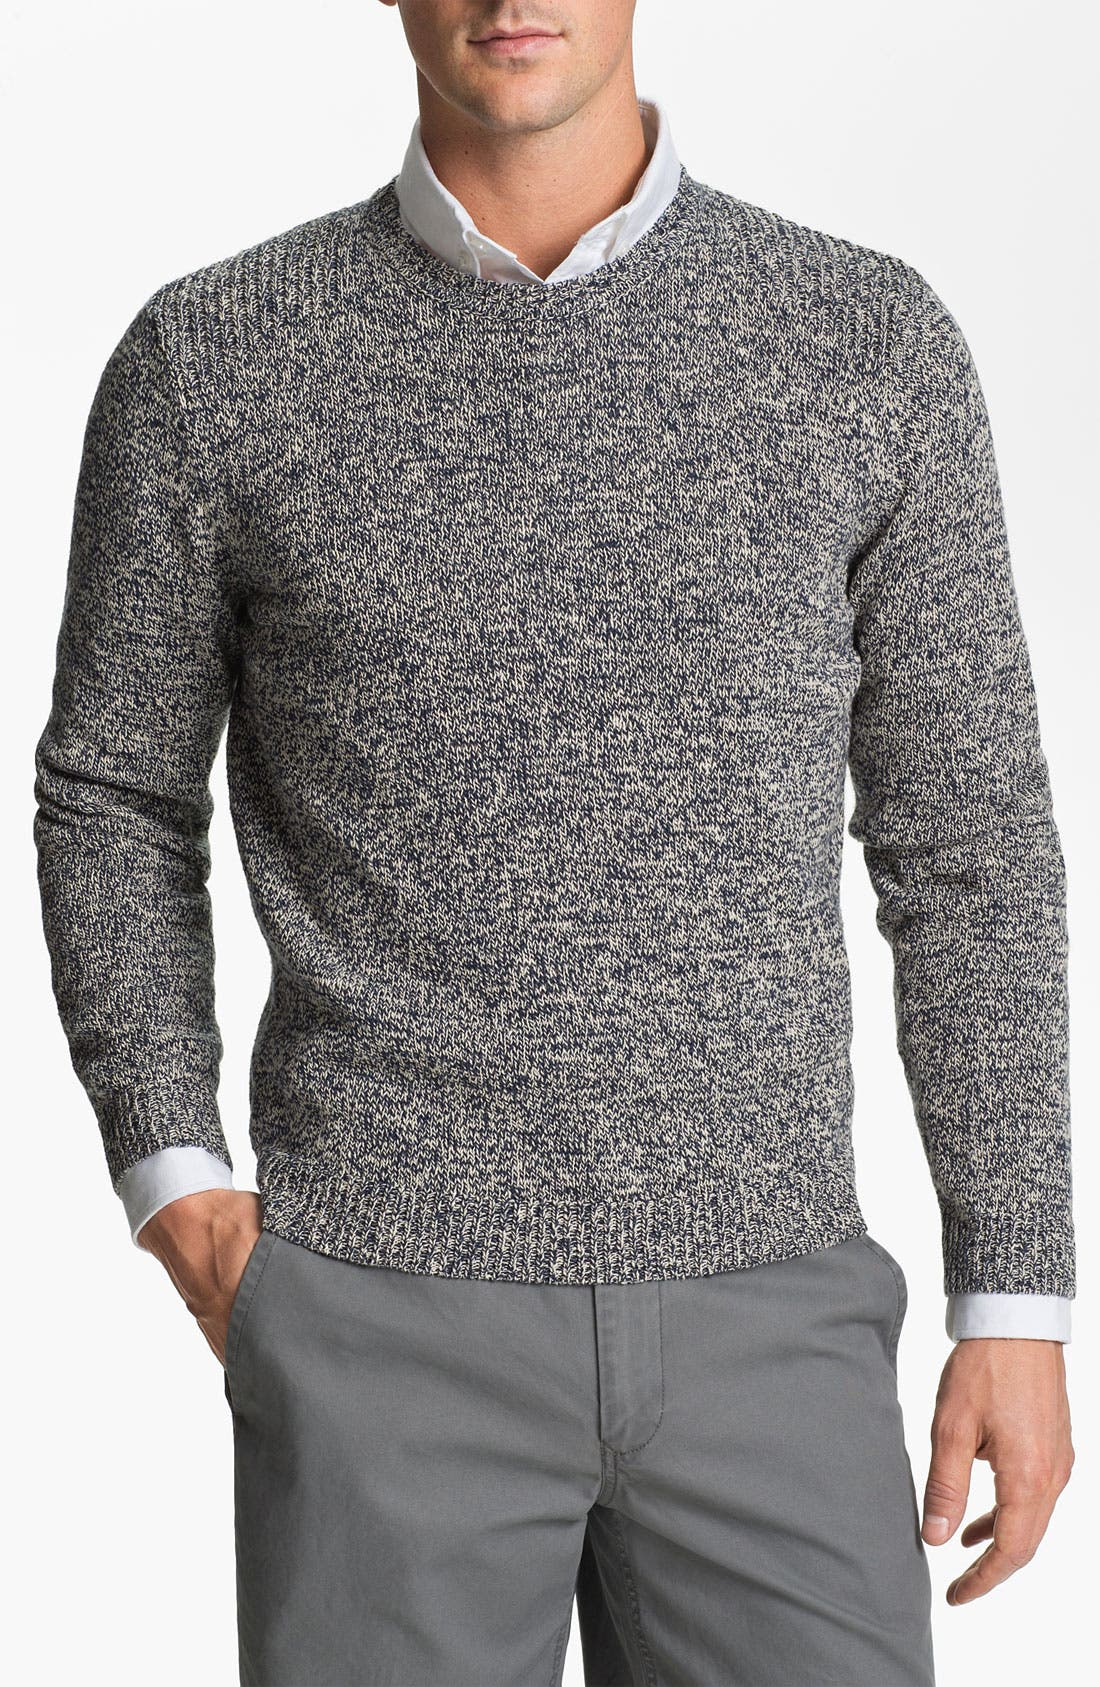 Main Image - Ted Baker London 'Keyston' Cotton & Linen Crewneck Sweater